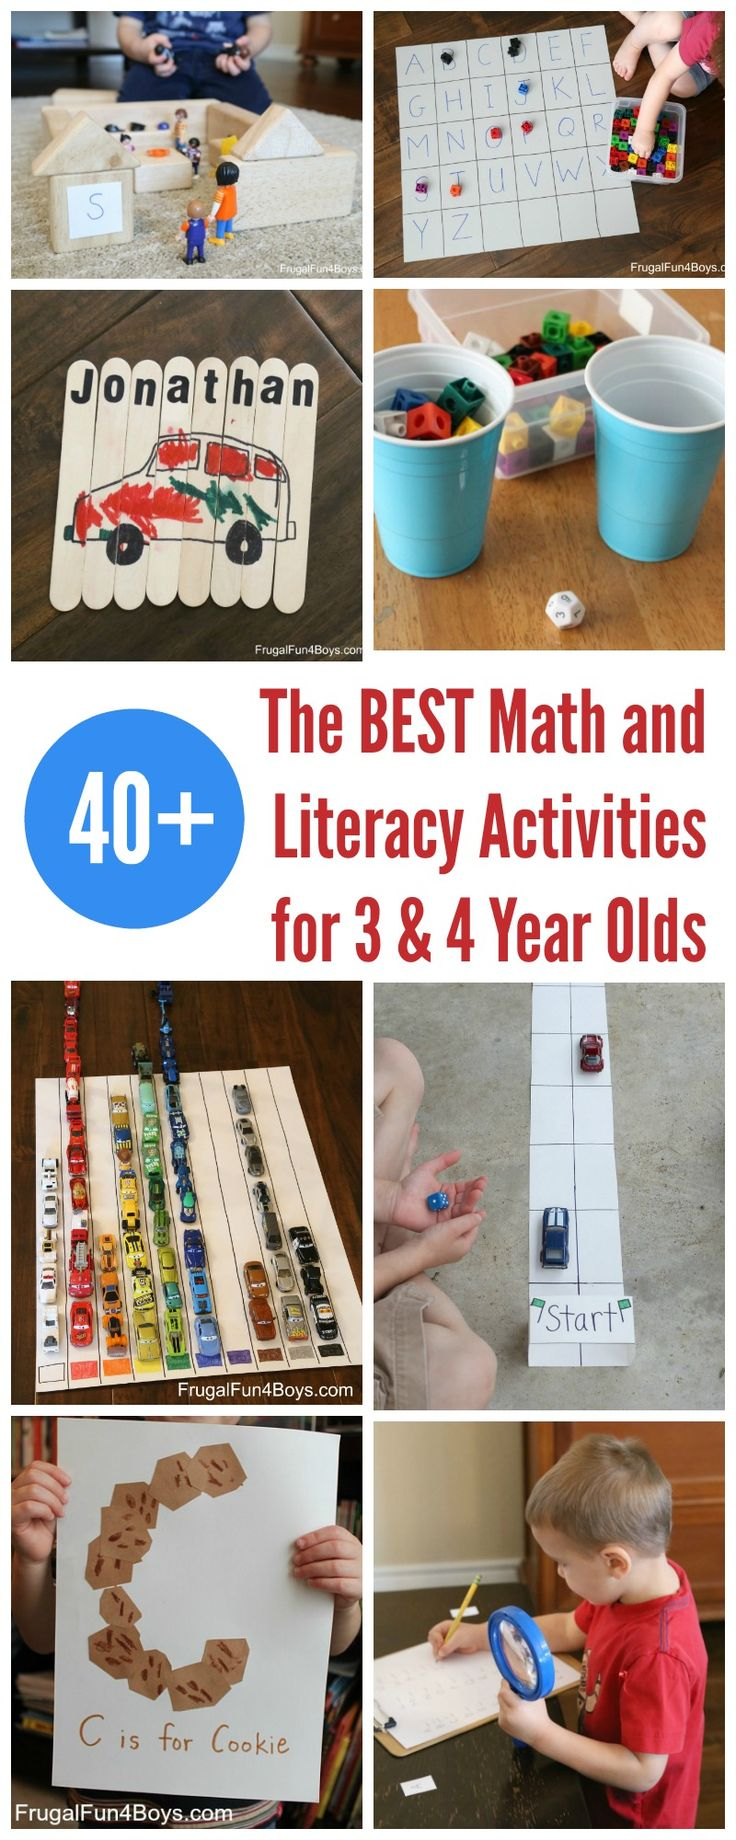 40+ of the BEST Math and Literacy Activities for Preschoolers 3 & 4 Year Olds - Frugal Fun For Boys and Girls